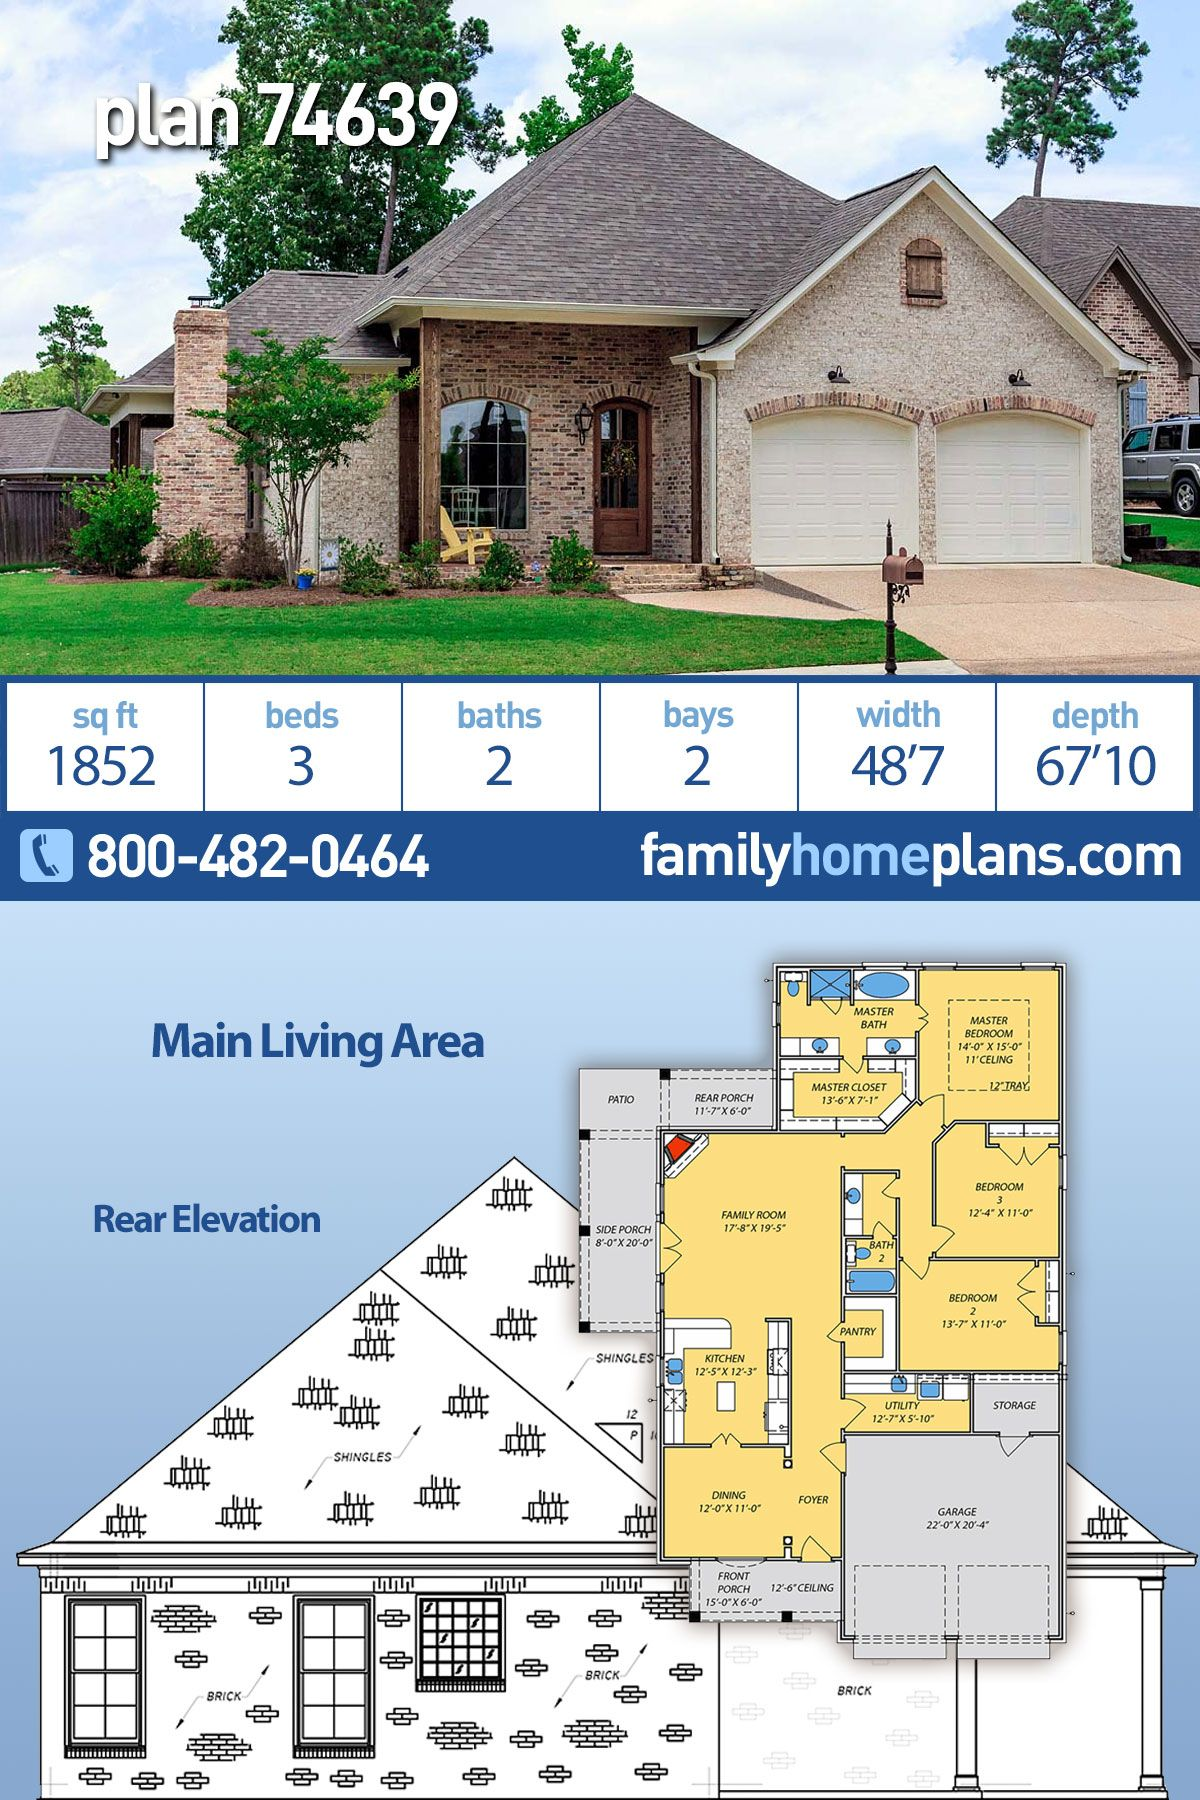 Traditional Style House Plan 74639 With 3 Bed 2 Bath 2 Car Garage Ranch Style House Plans House Plans Vintage House Plans